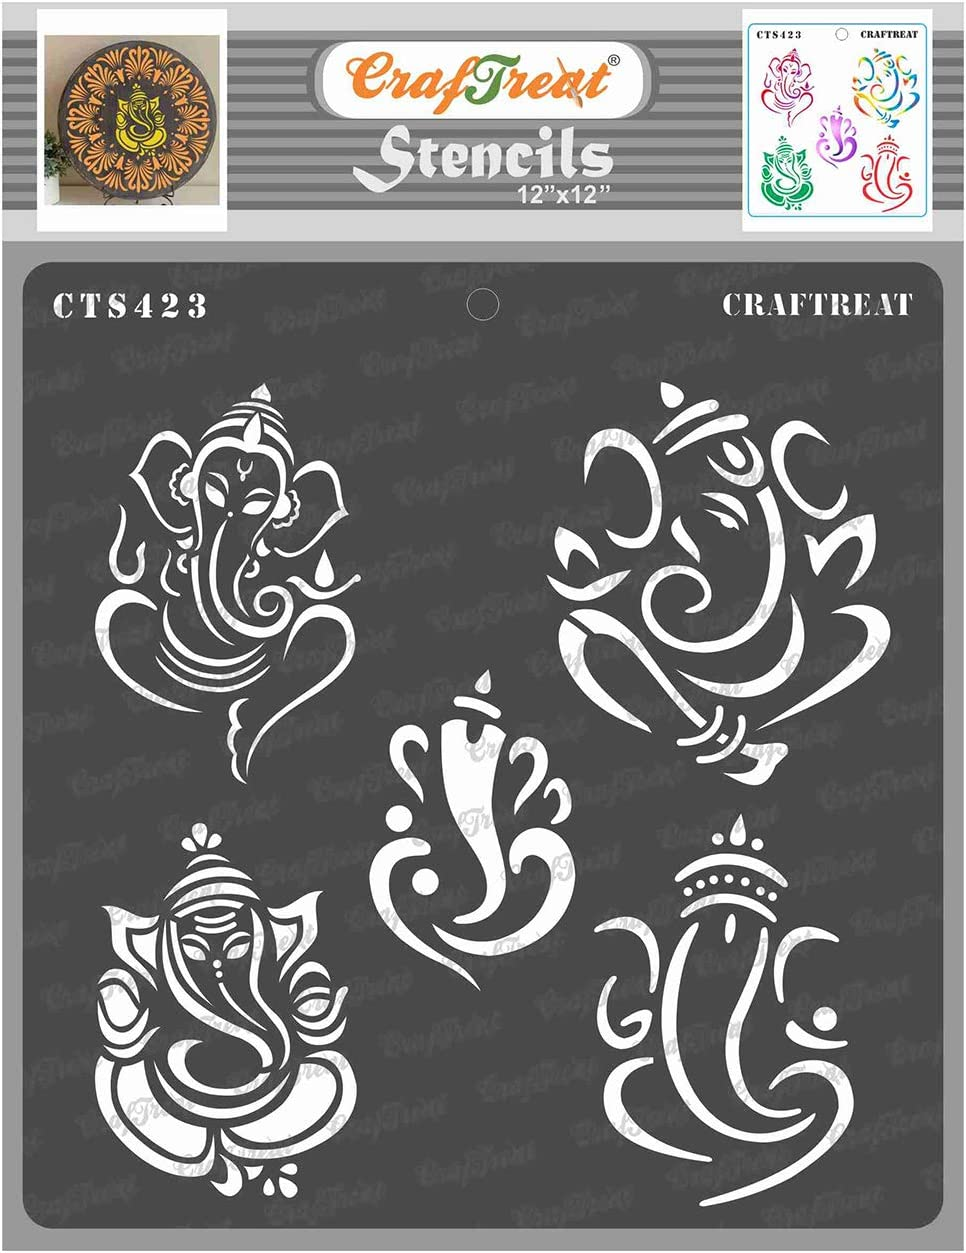 CrafTreat Ganesh Stencils for Painting on Wood, Wall, Tile, Canvas, Paper, Fabric and Floor - Ganeshas - 12x12 Inches - Reusable DIY Art and Craft Stencils - Indian God Stencils for Home Decor